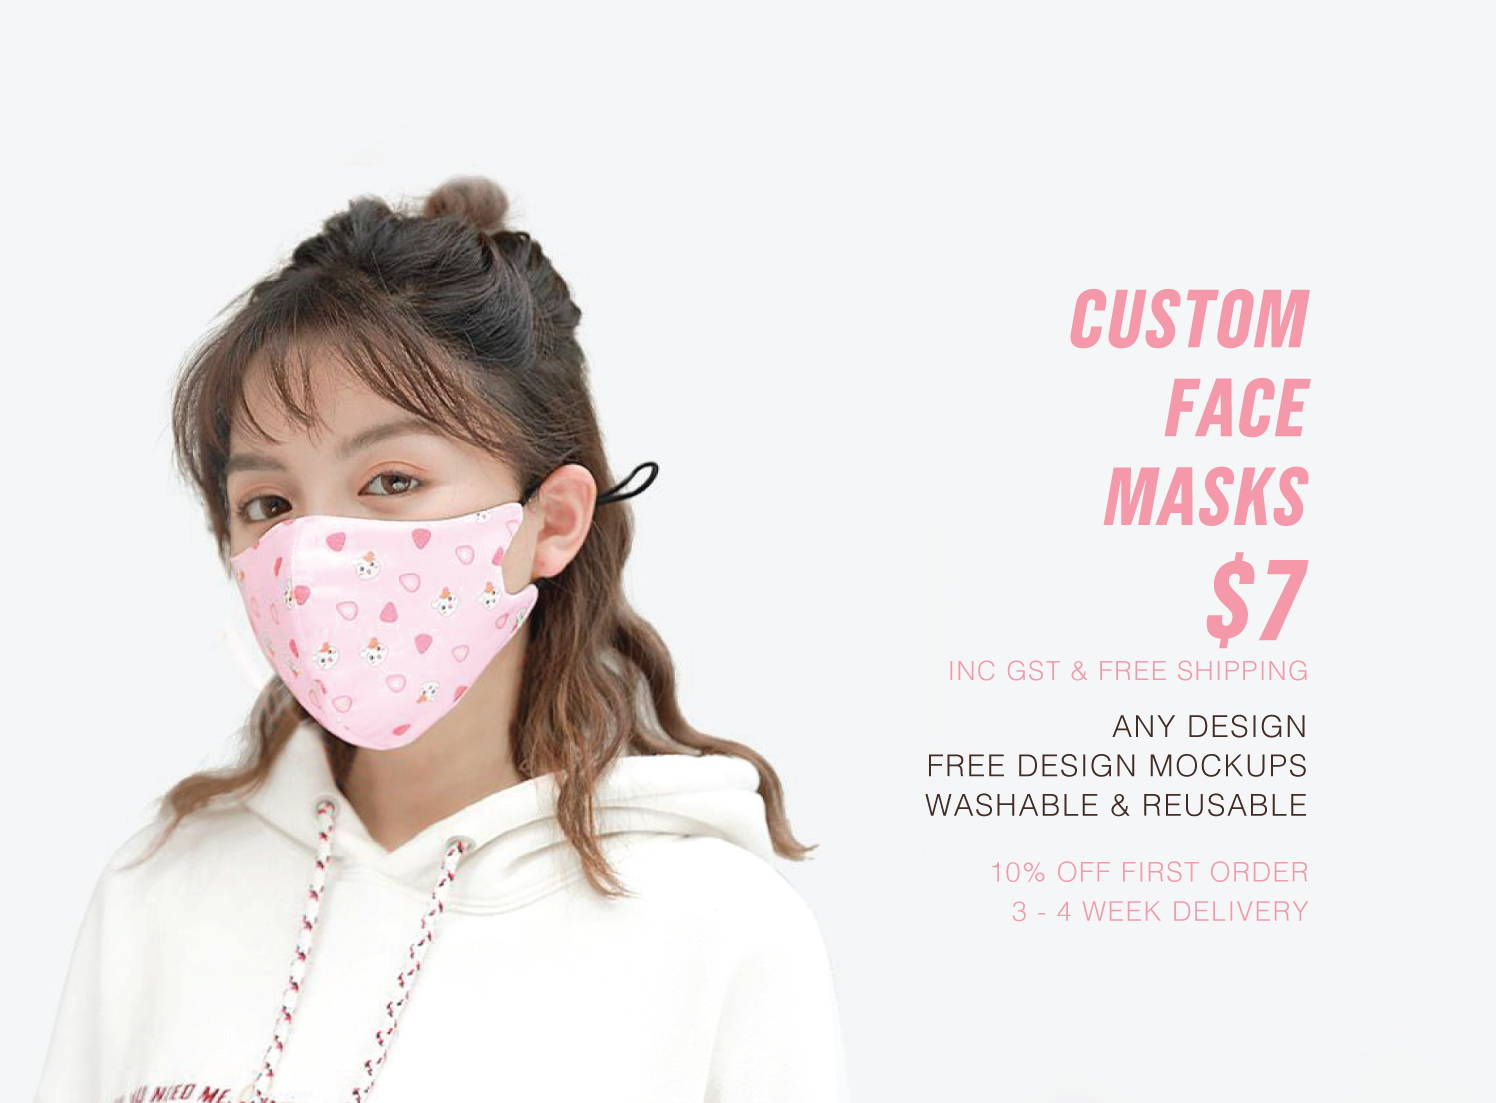 Washable and reusable, our face coverings fit both adults and children.